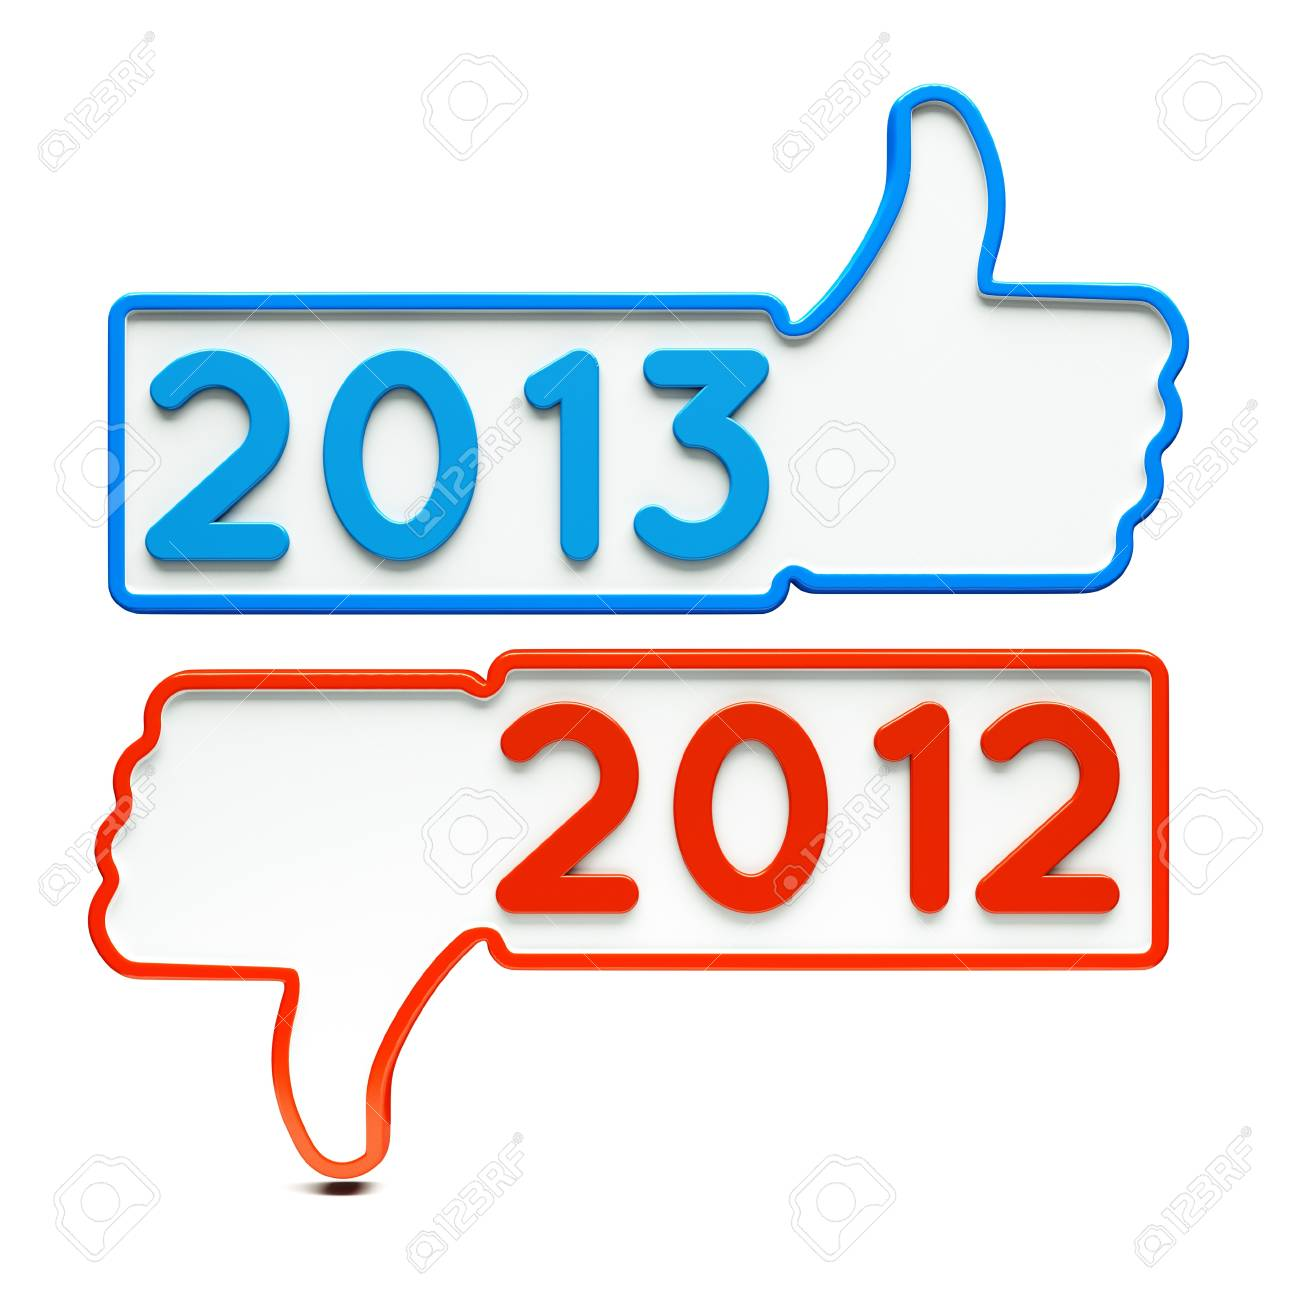 a two Like signs with 2013 and 2012 on white Stock Photo - 14888258